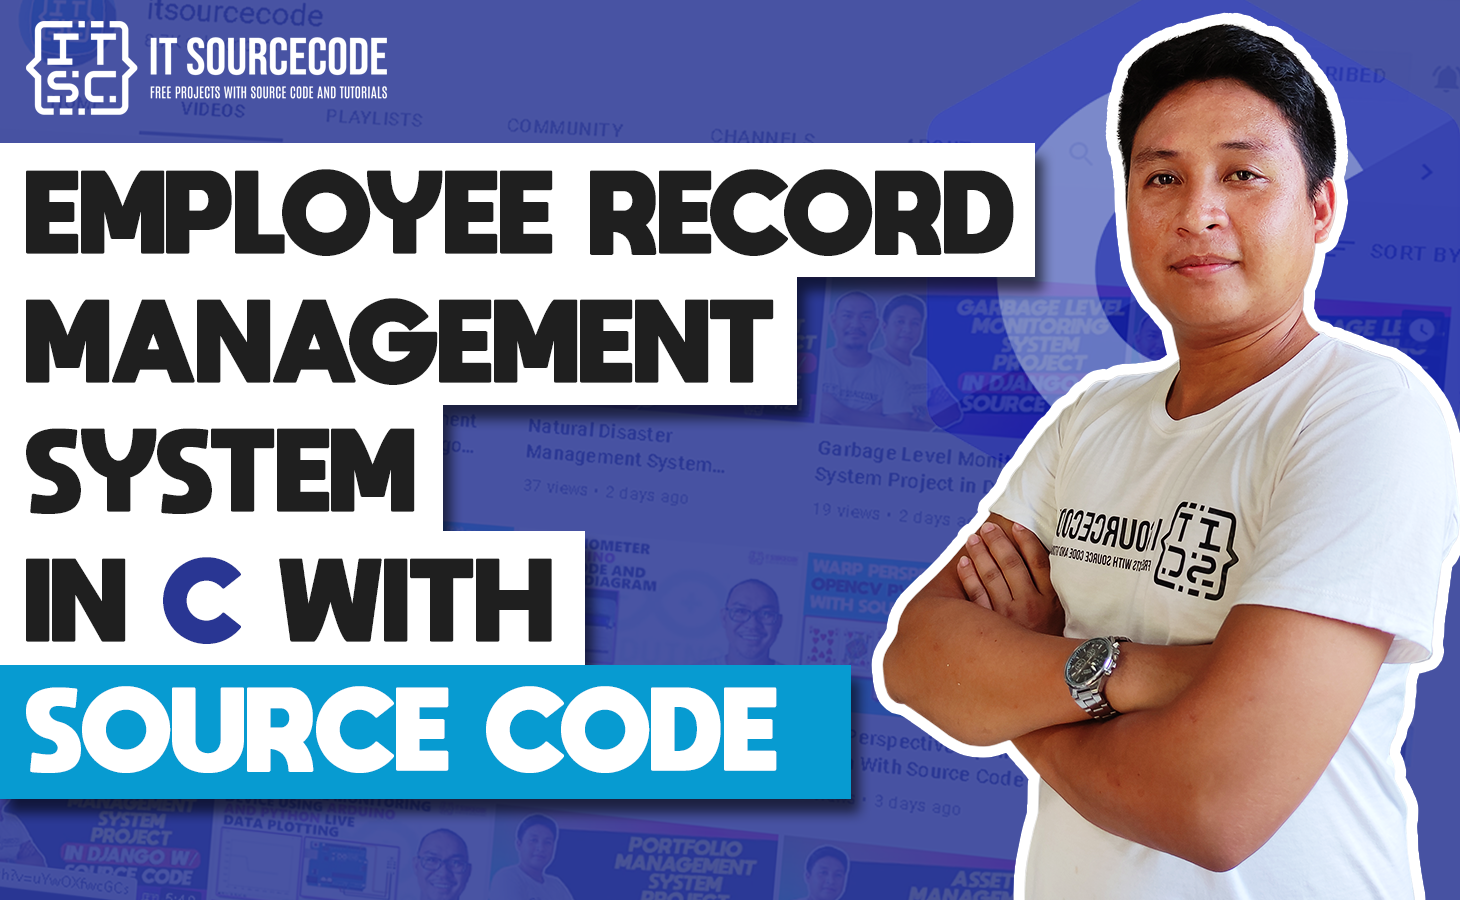 employee record management system in c with SOurce Code